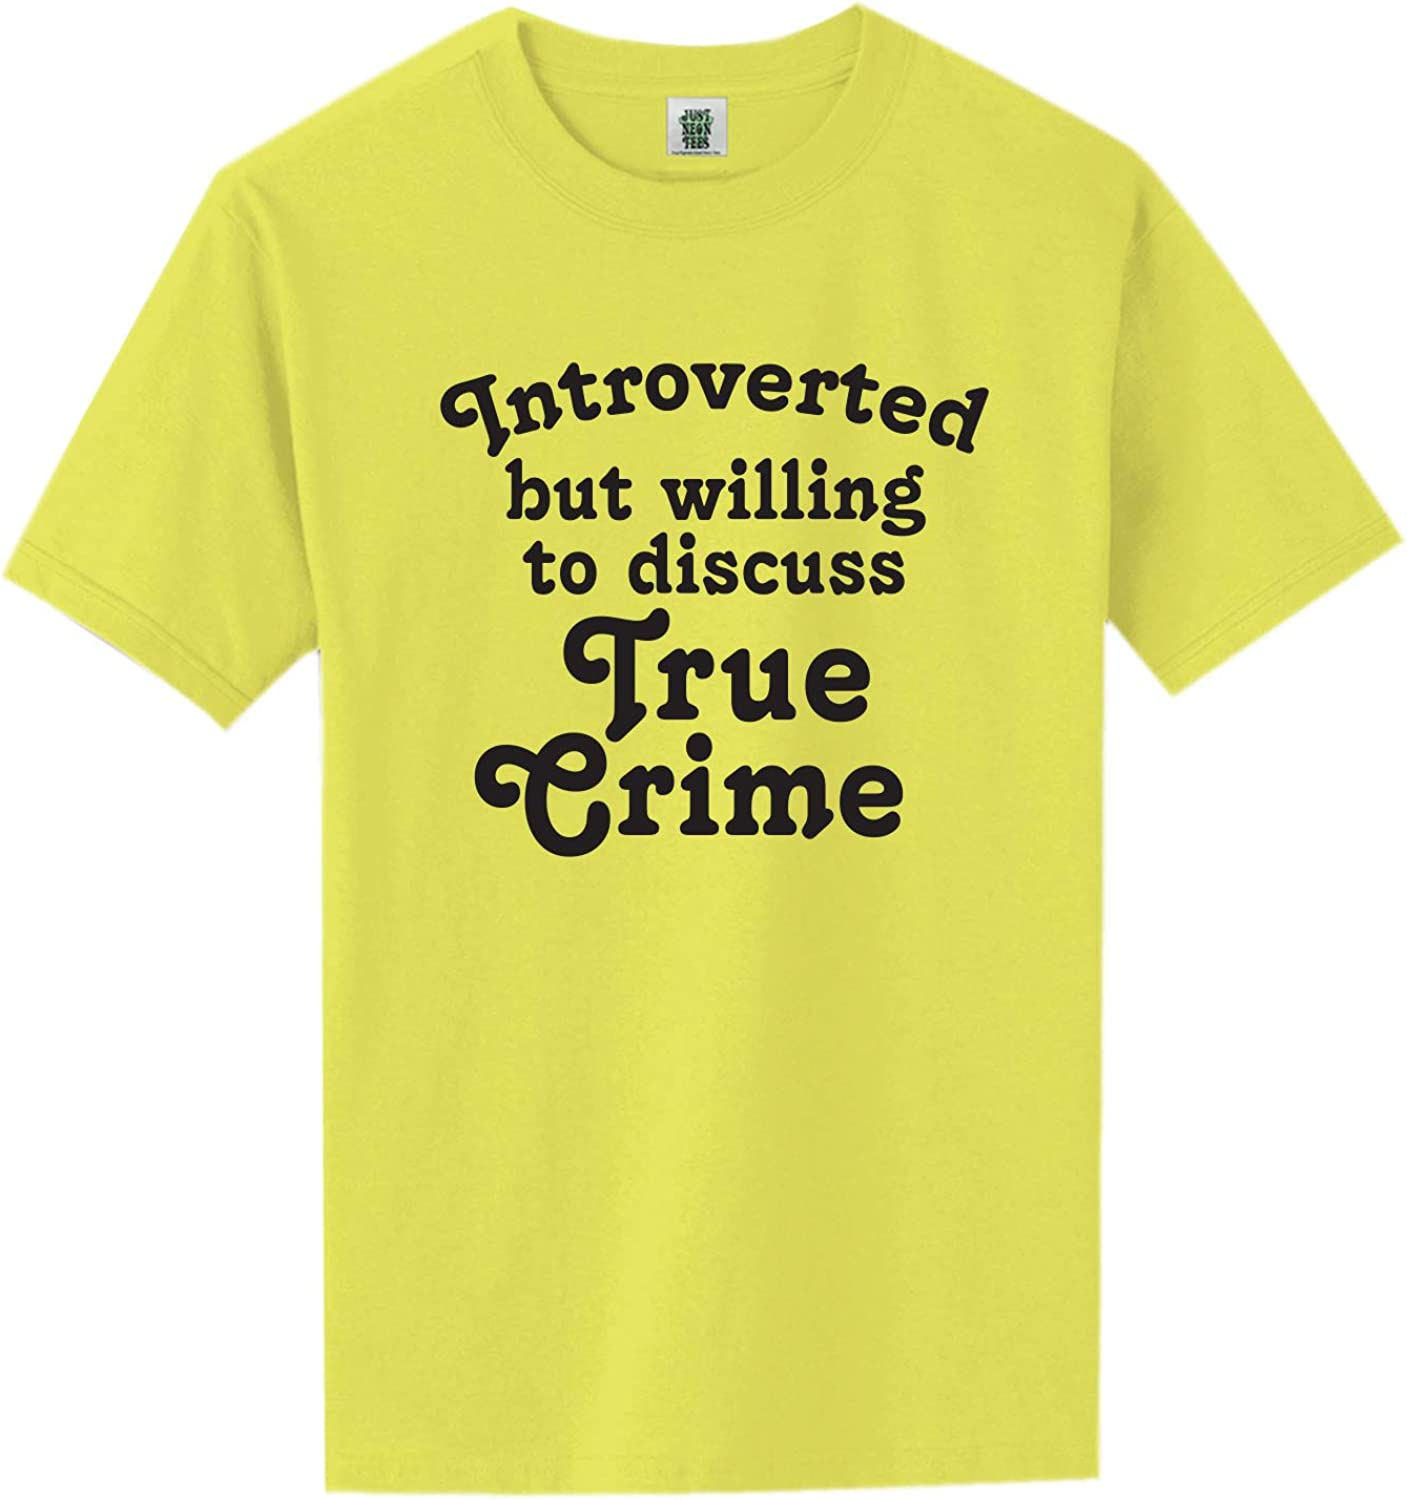 Introverted.Discuss True Crime Short Sleeve Neon Tee